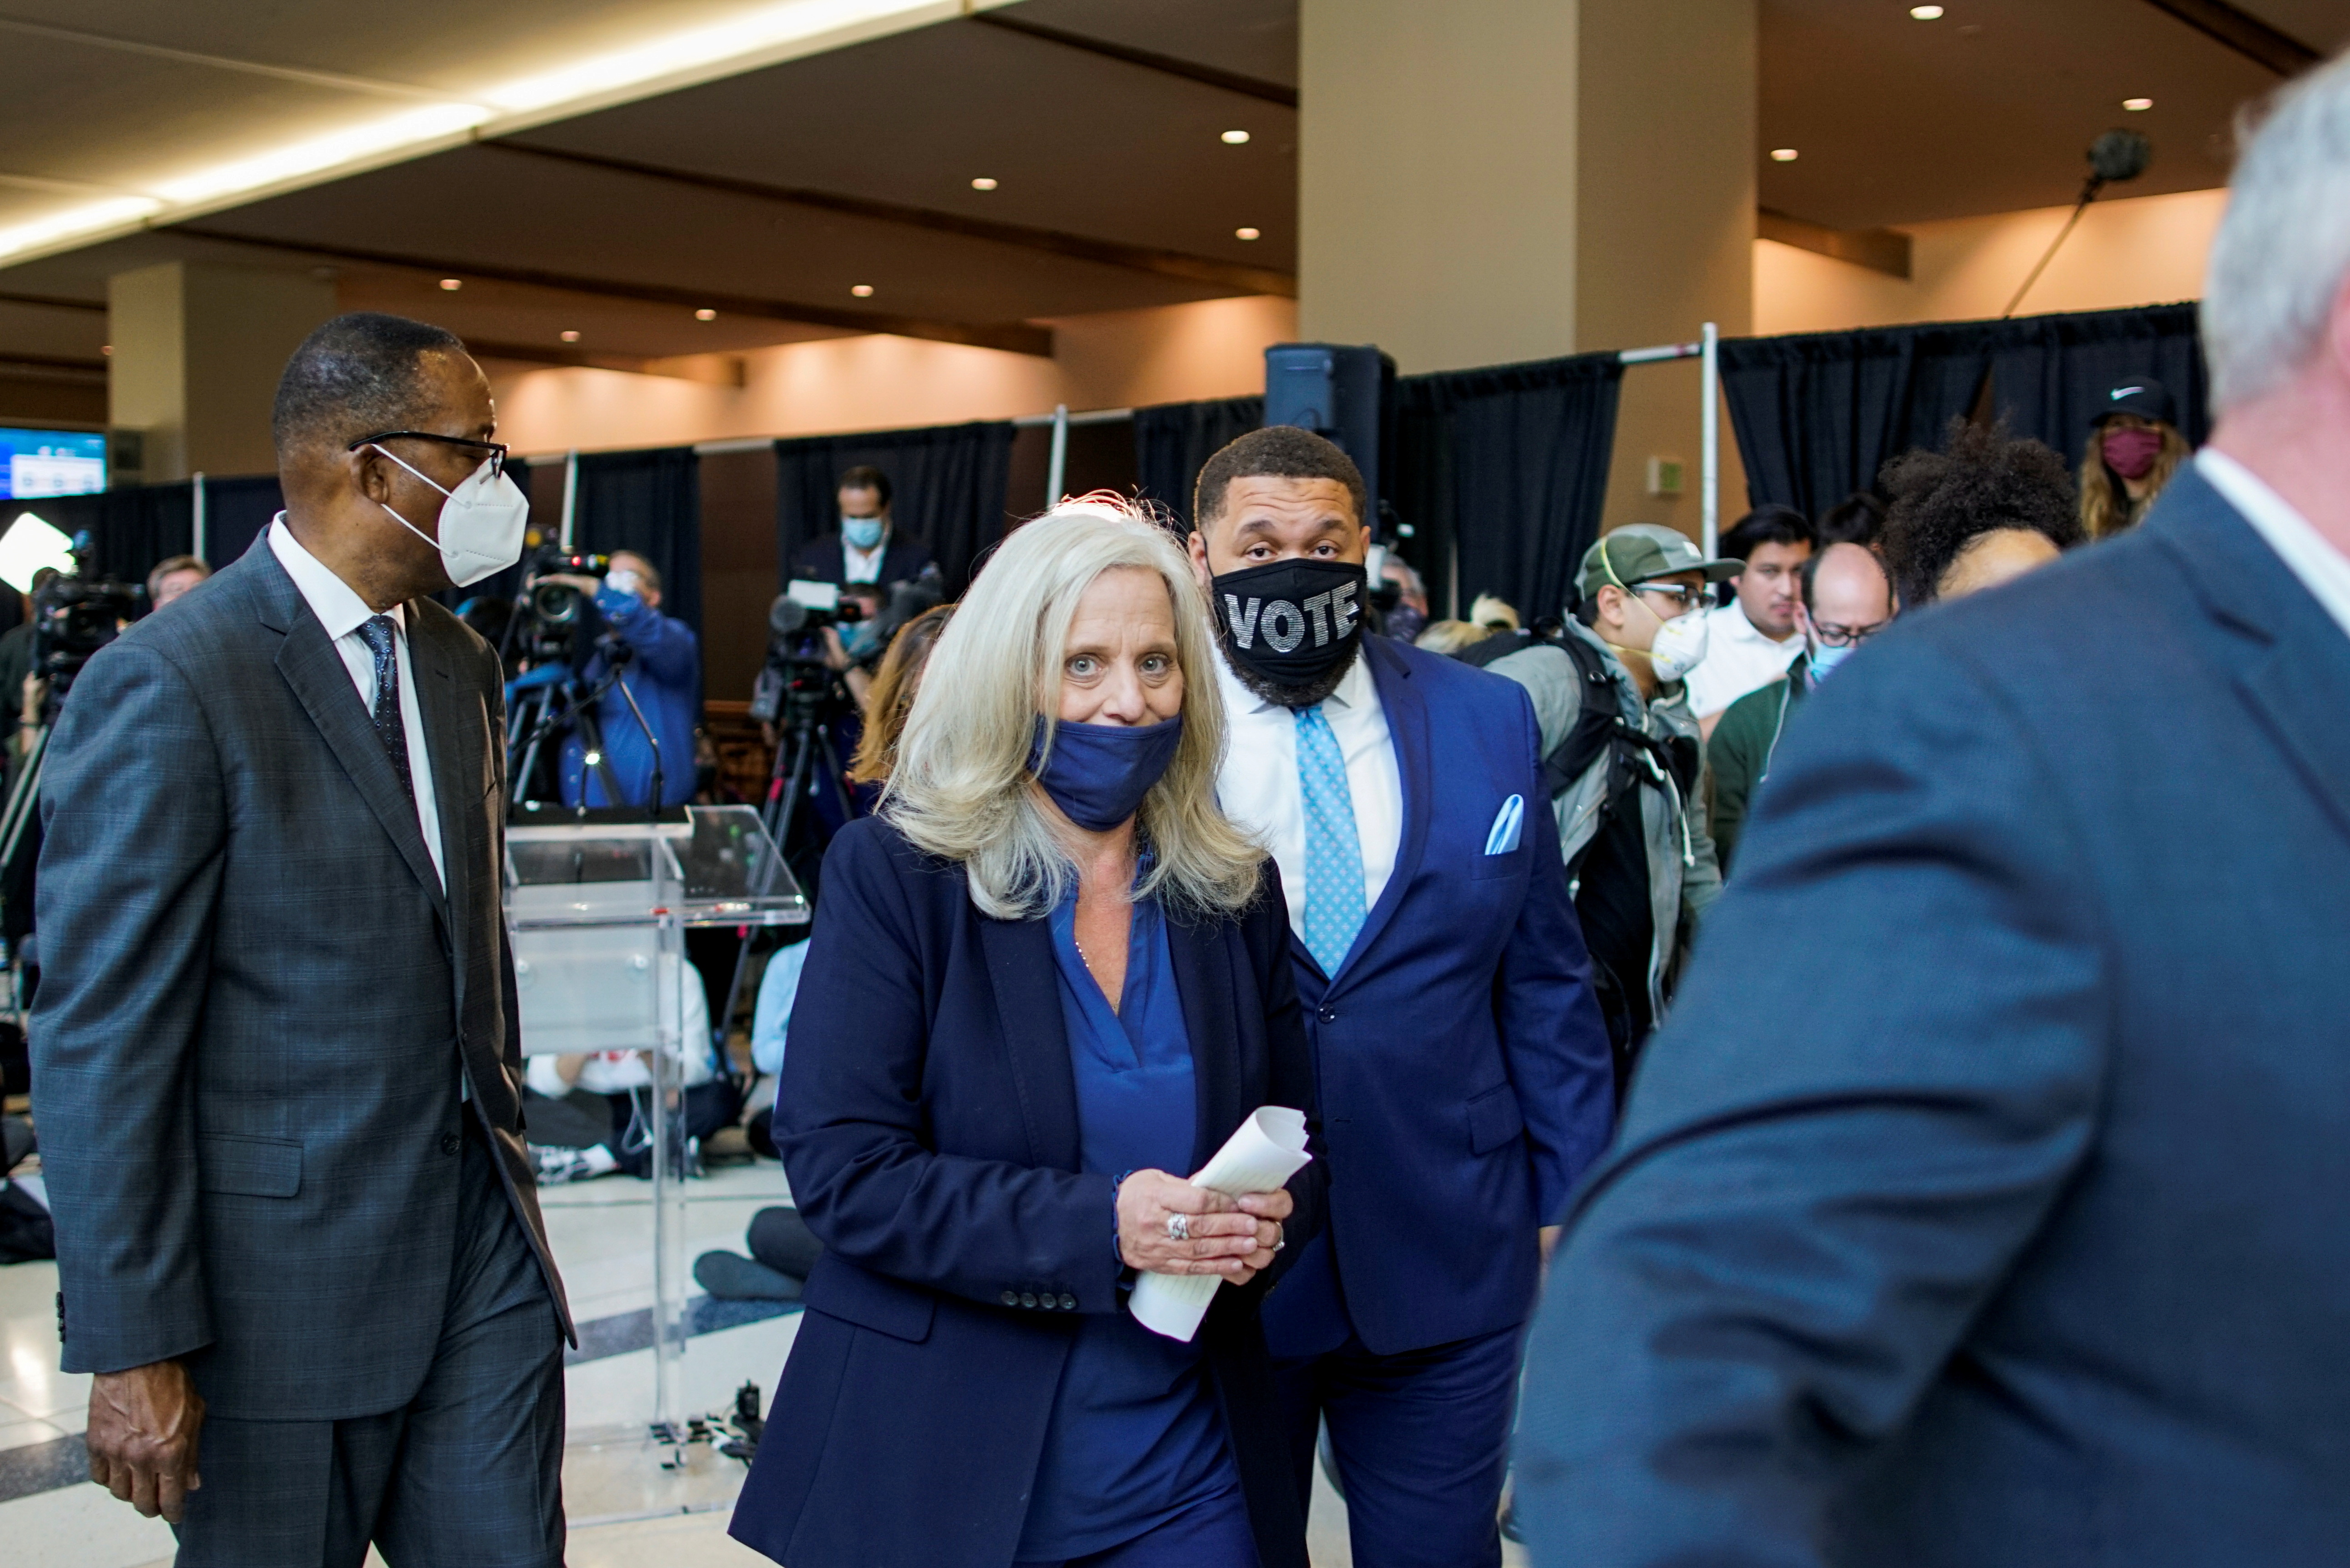 City Commissioner Lisa Deeley leaves after attending a news conference at Pennsylvania Convention Center as vote counting continues three days after the 2020 U.S. presidential election, in Philadelphia, Pennsylvania, U.S. November 6, 2020.  REUTERS/Eduardo Munoz/File Photo